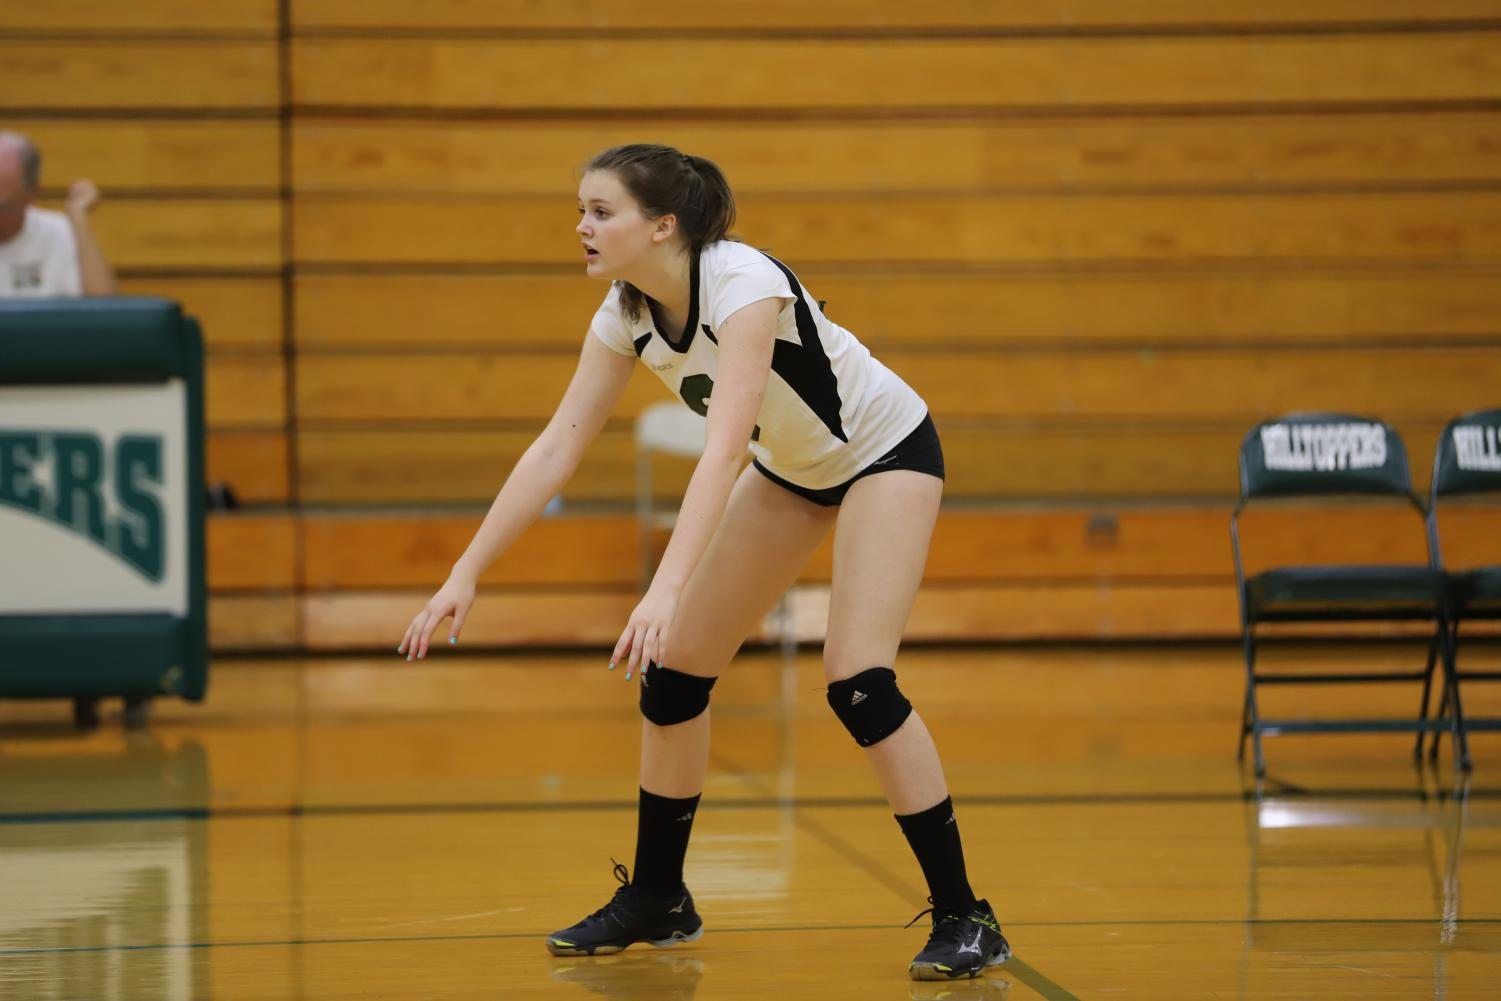 Fiona+Kelly+%28sophomore%29+defensively+anticipates+the+ball.%0A